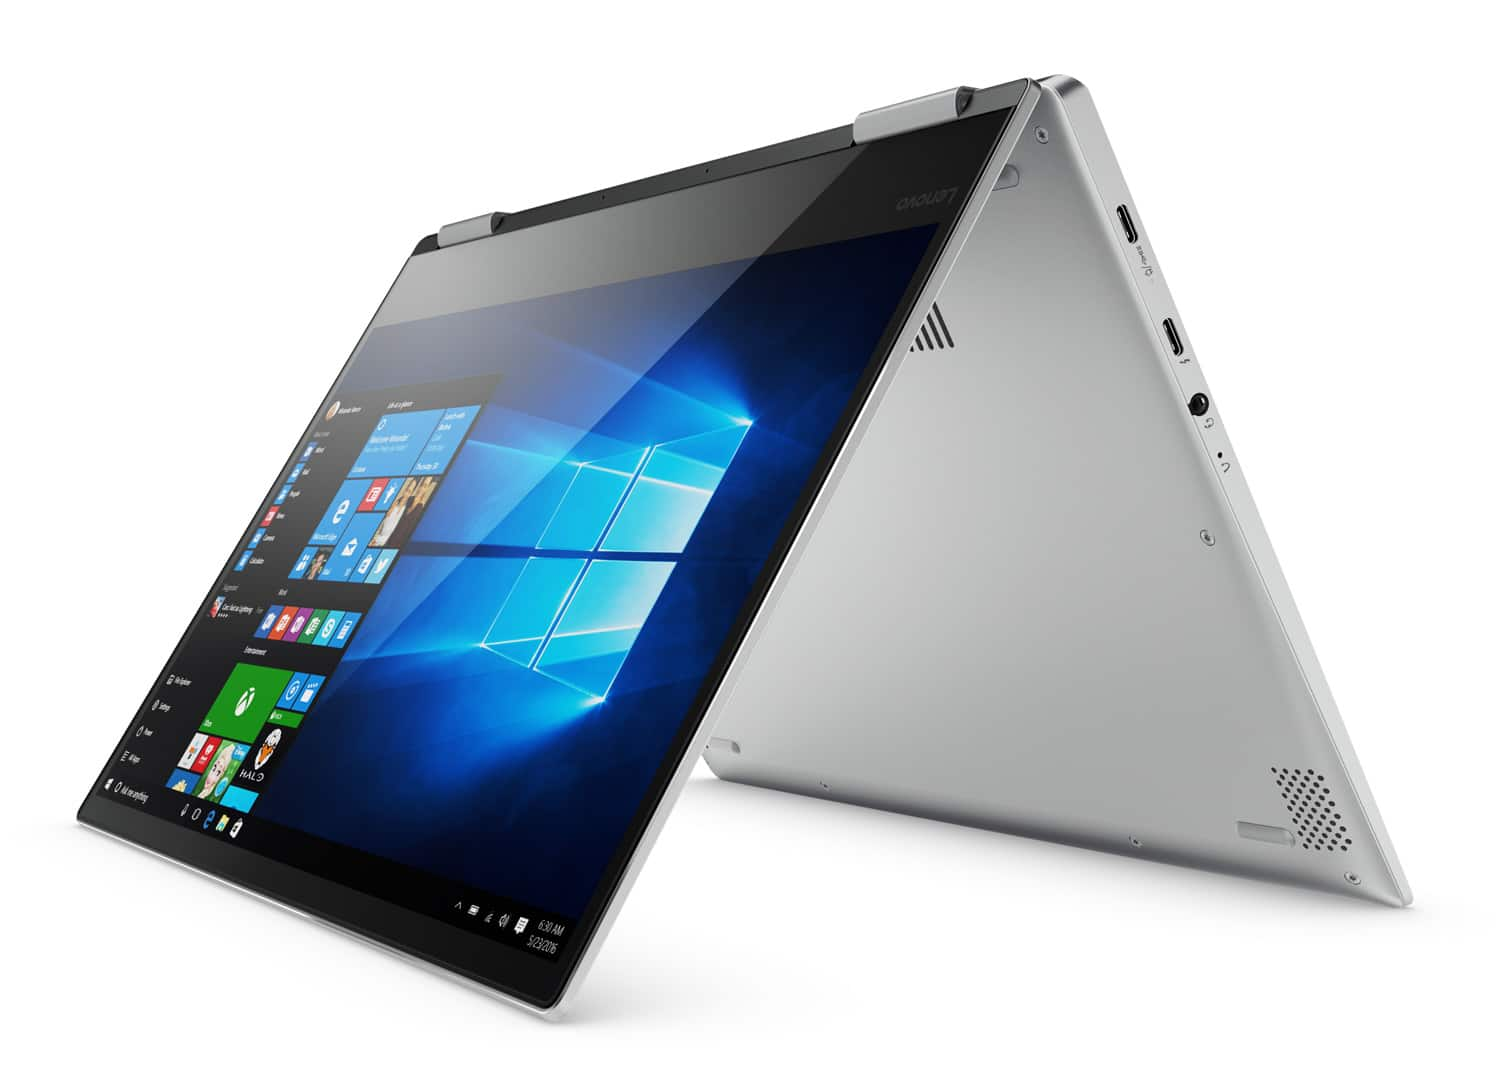 Tablette Tactile 13 Pouces Lenovo Yoga 720 13ikbr Ultrabook 13 Pouces Tablette Full Ips Quad